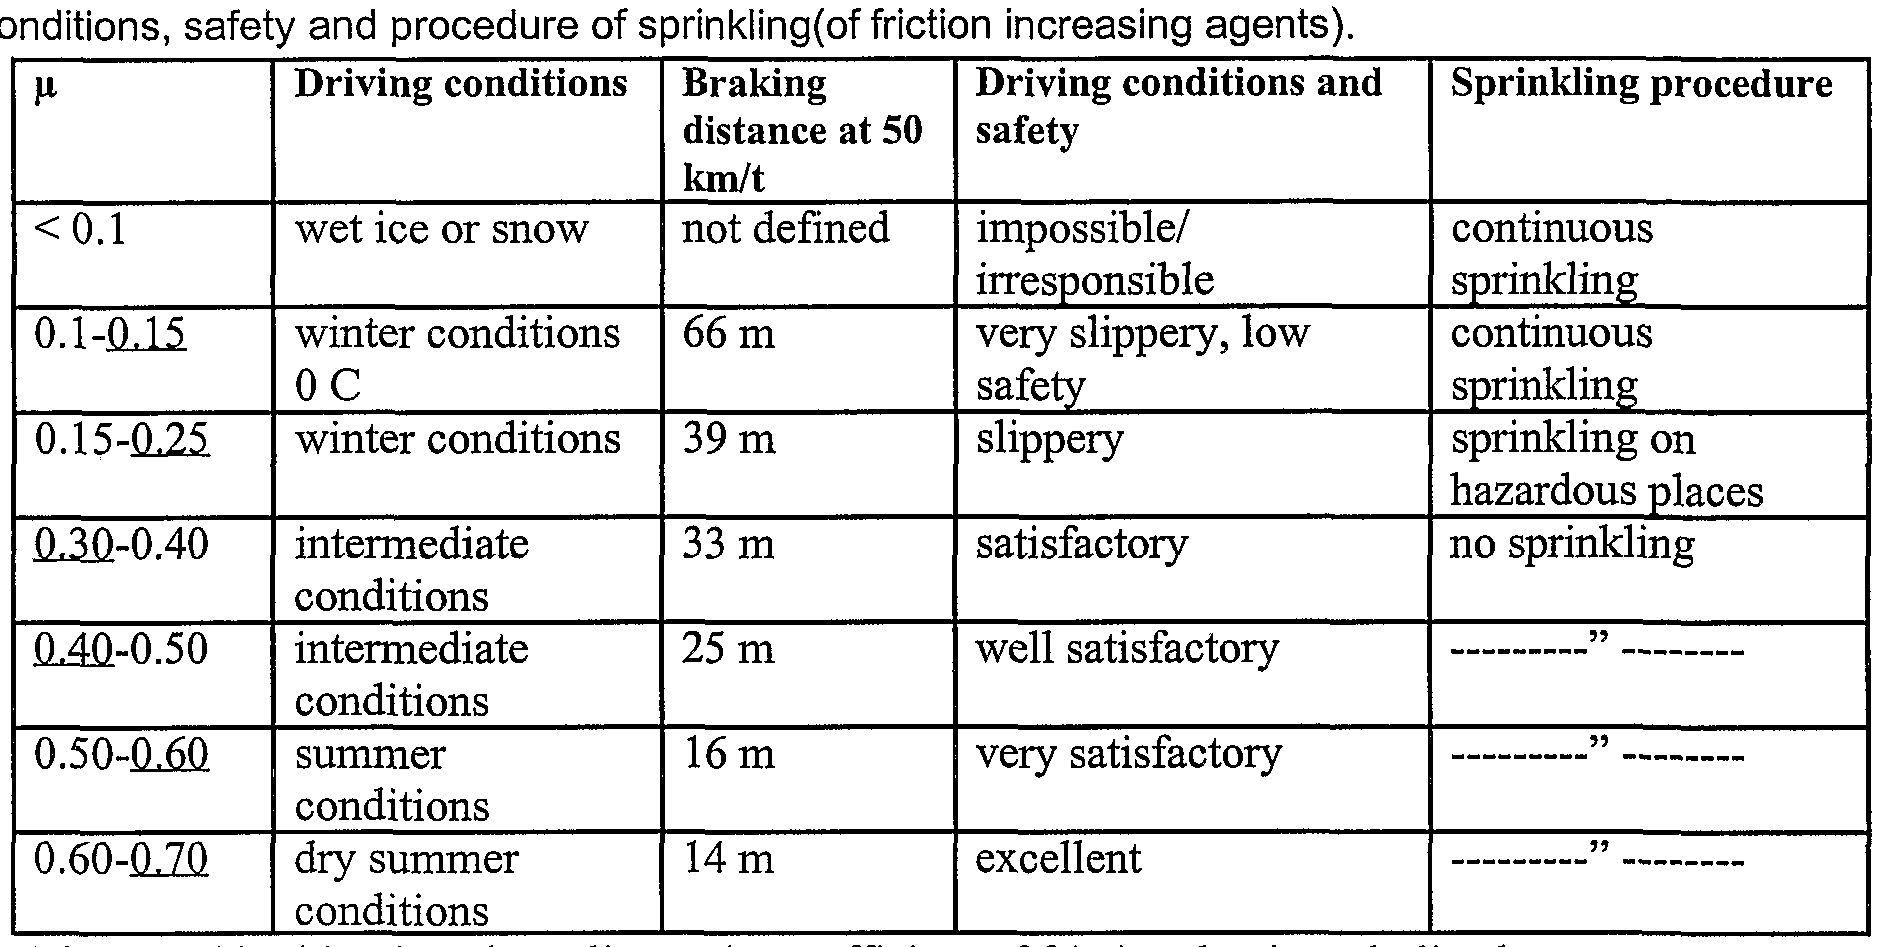 coefficients of friction The coefficient of friction between two materials in relative sliding may depend on contact pressure, surface roughness of the relative harder contact surface, temperature, sliding velocity and the type of lubricant whether the level of contamination.